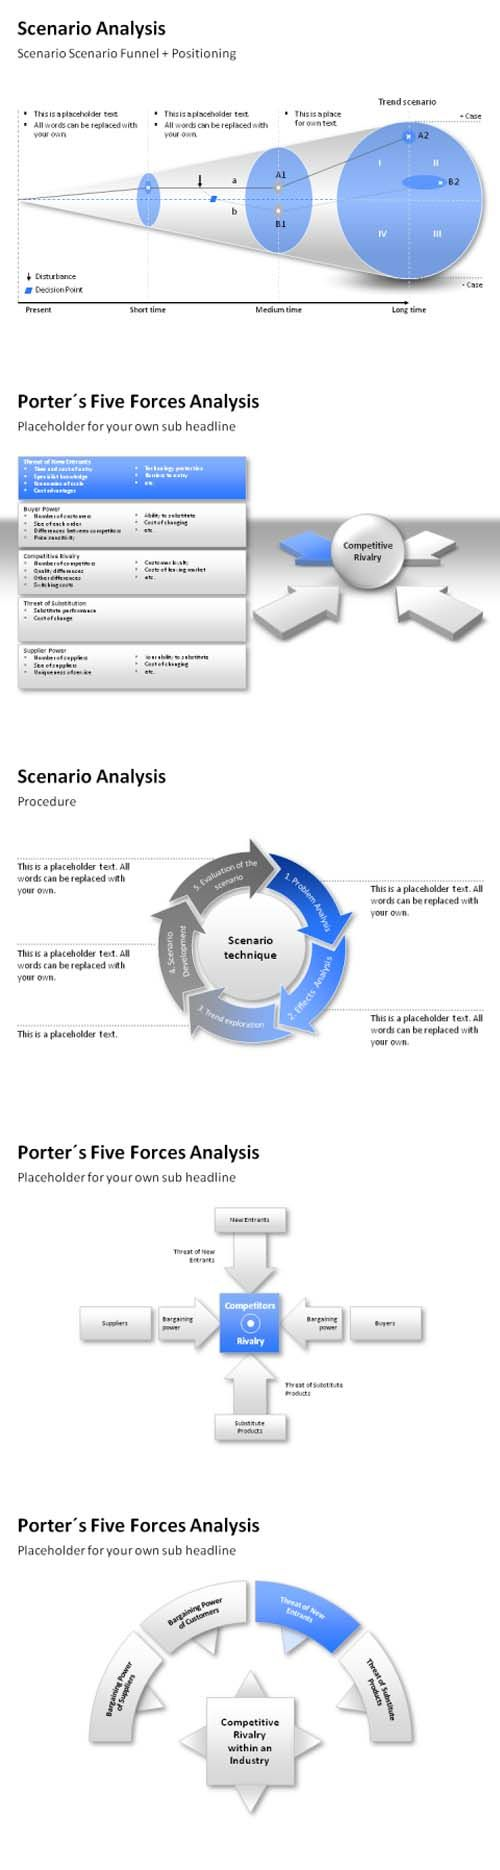 Business Analysis PowerPoint Templates #powerpoint #business http://www.tykans.com - Via Tykans Group Inc